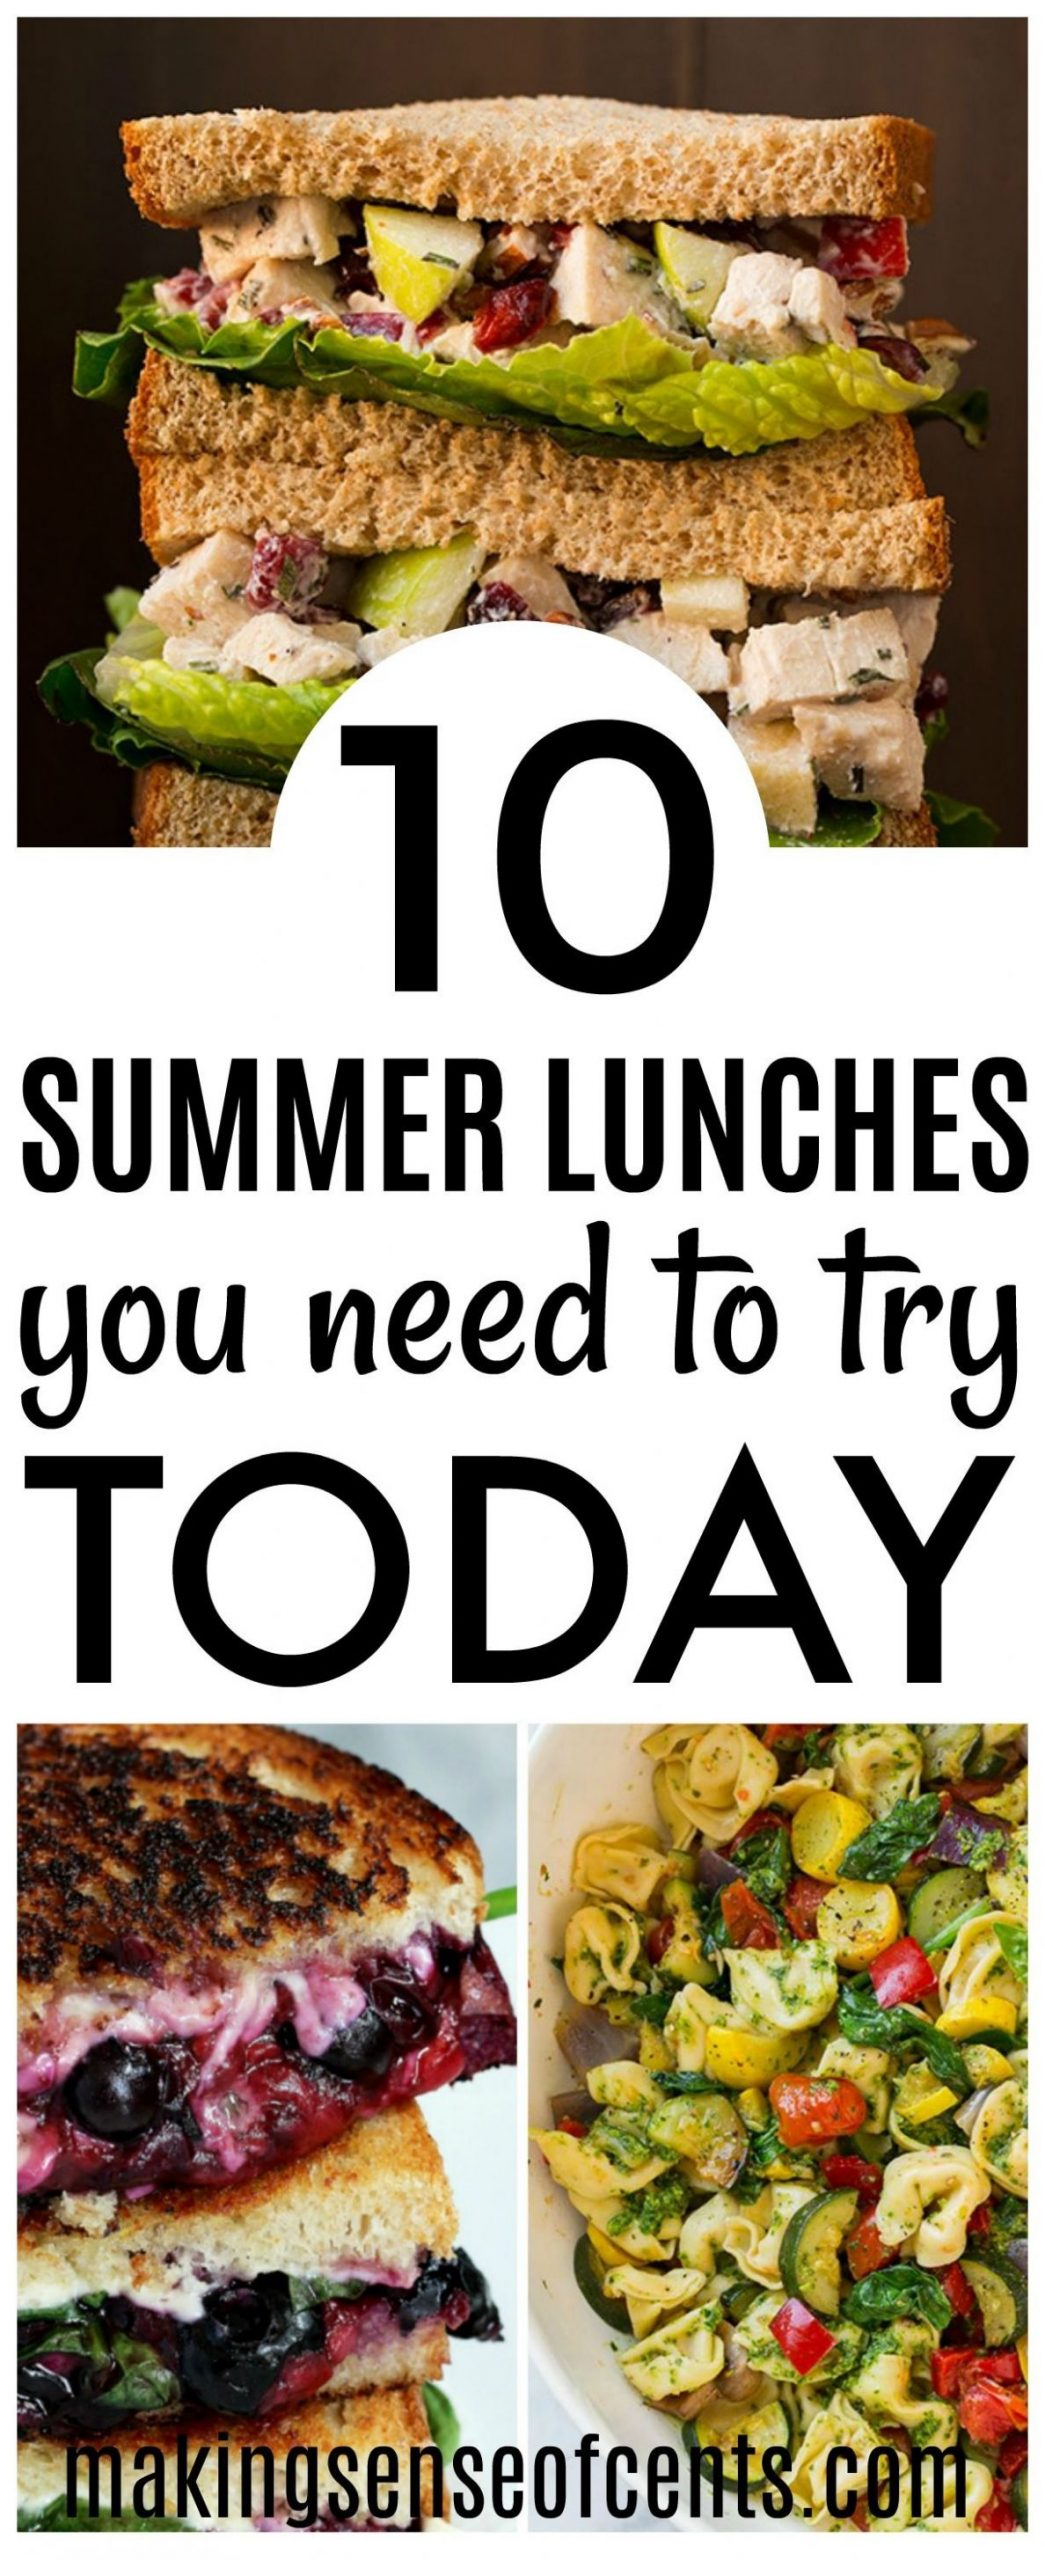 8 Delicious Summer Lunch Ideas - Summer Meals You Need To Make ...